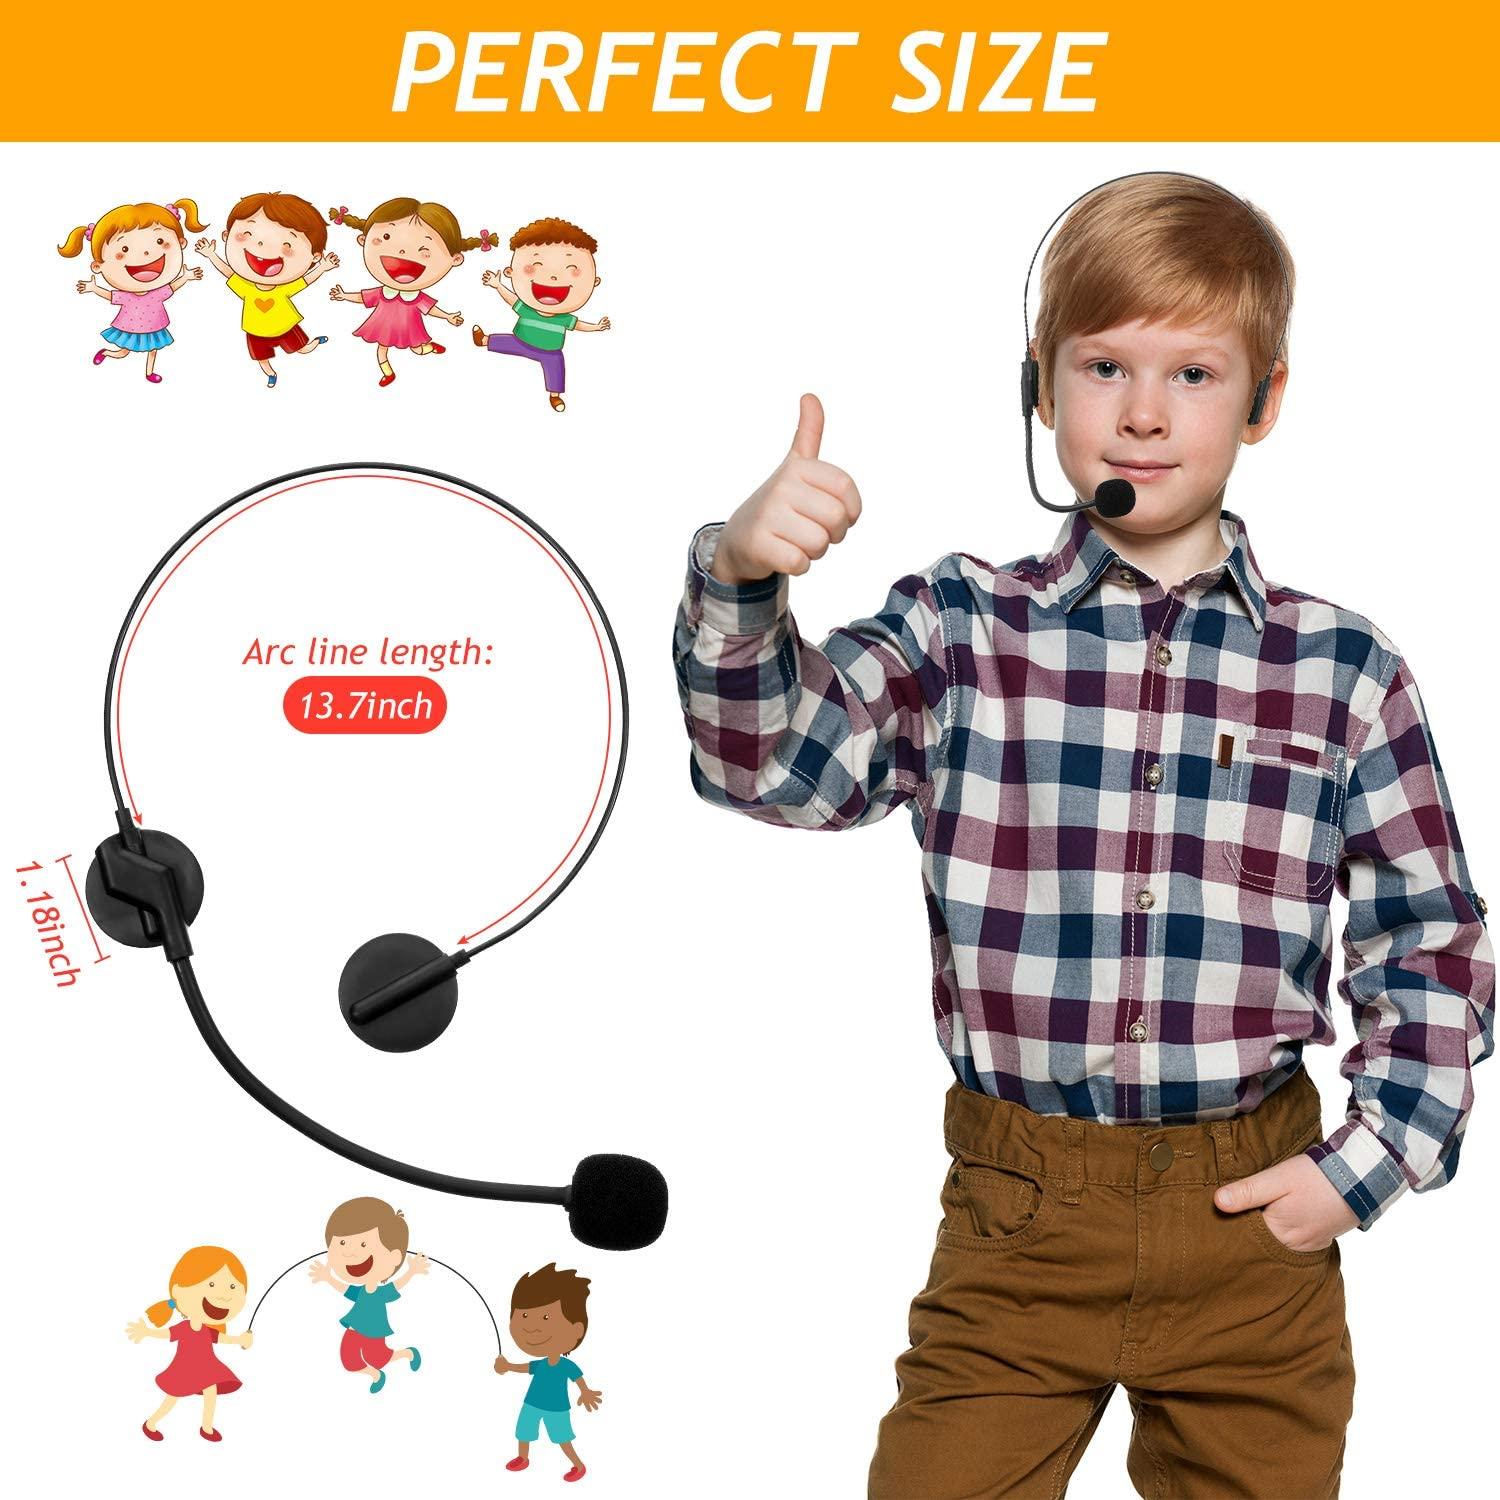 Toy Microphone Set 6 Pieces Rockstar Costume Toy Headset 12 Pieces 10 Inches Wireless Inflatable Multicolored Microphone Set Toy Headpiece Microphone for Makeup Party Props Masquerade